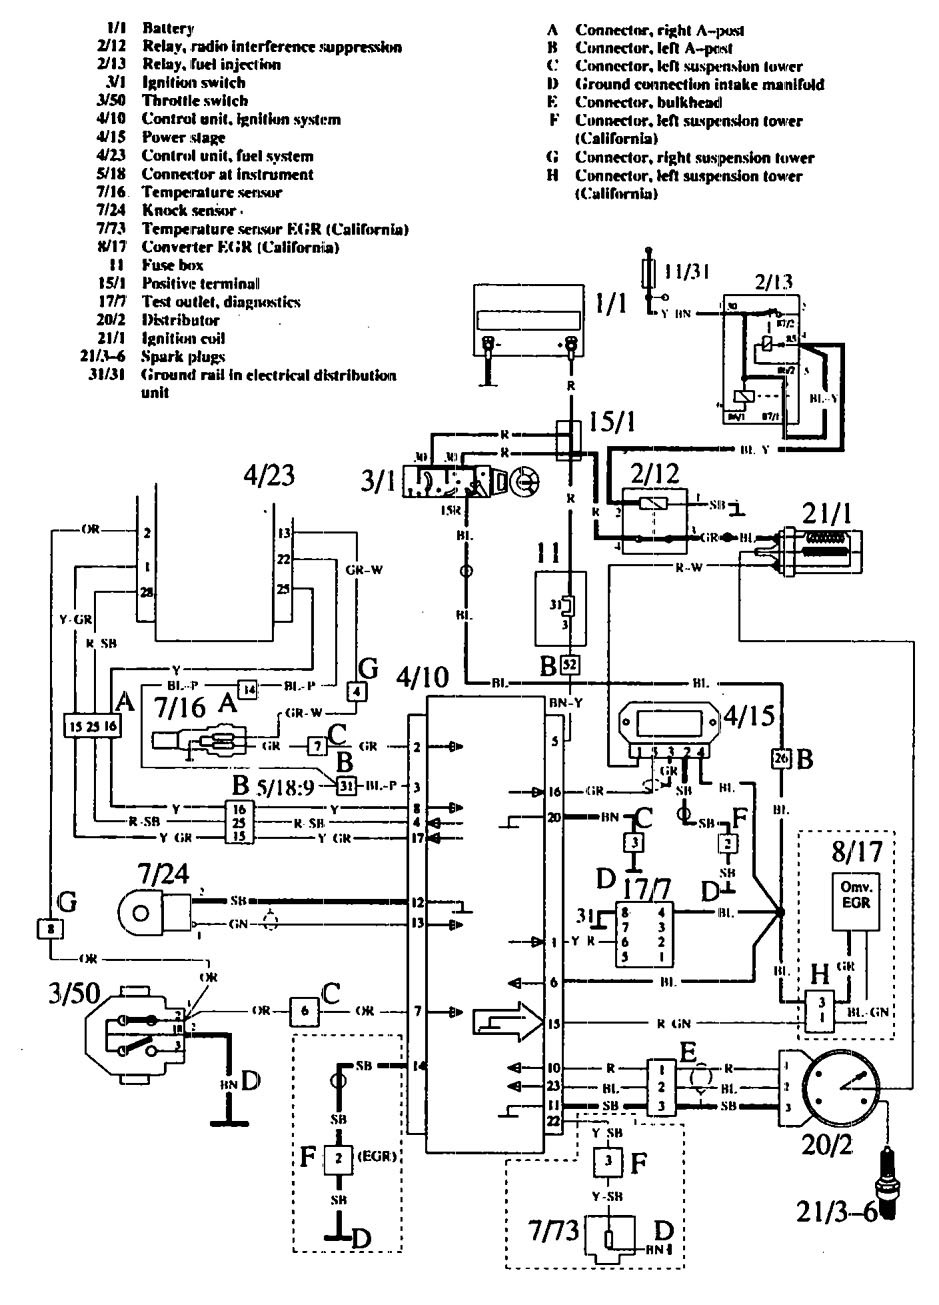 Wiring Diagram Volvo Fh16 : Volvo  wiring diagrams ignition carknowledge